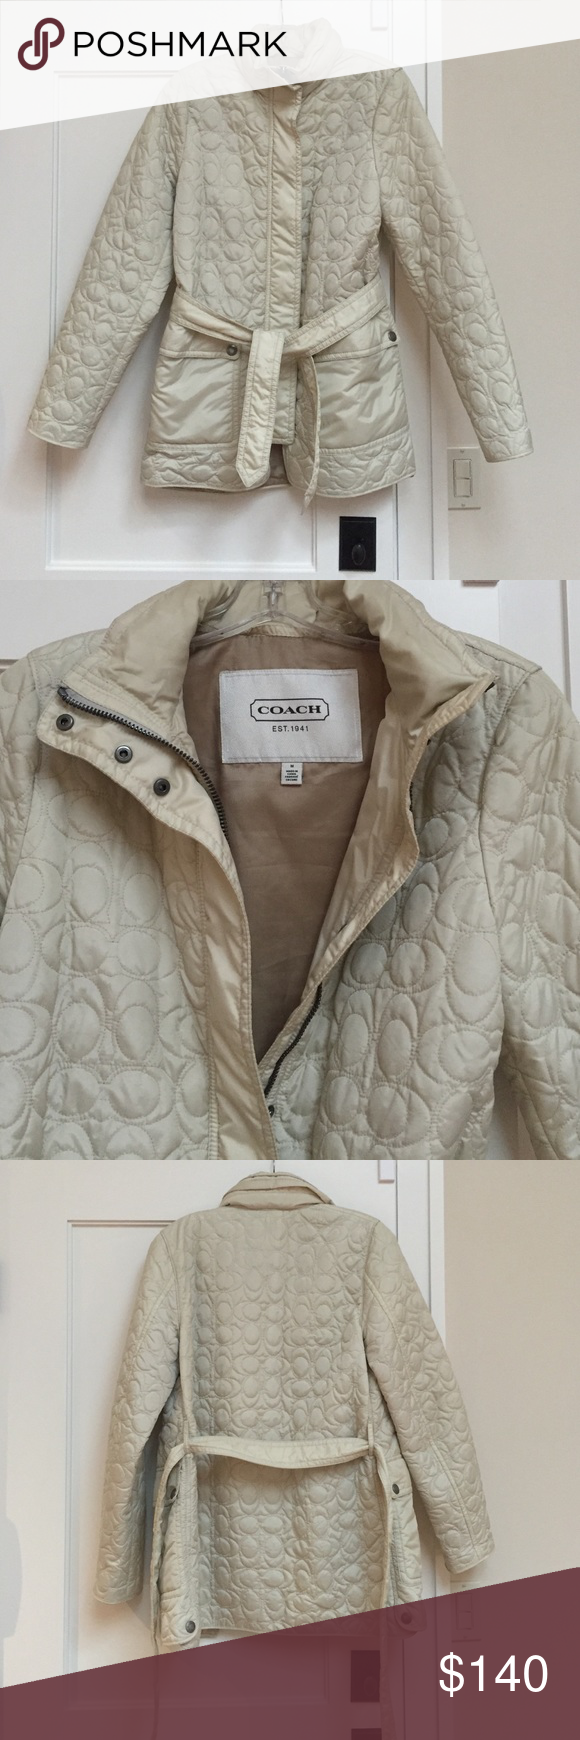 Coach ivory jacket Very cute and versatile ivory Coach jacket. Light puff with C symbols. Size  M Coach Jackets & Coats Puffers